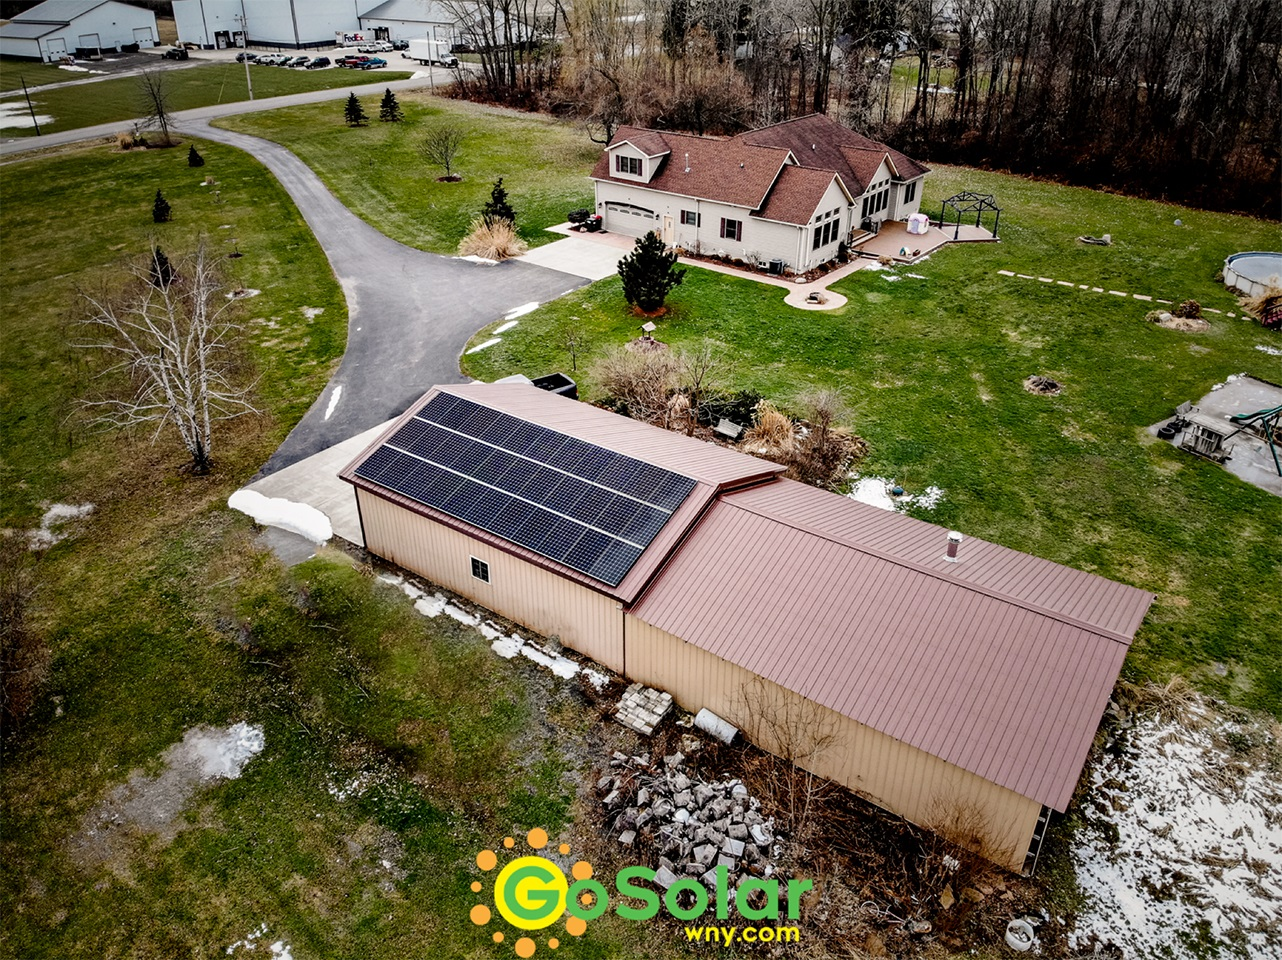 Panasonic Solar Panels on Steel Roof Barn in Middleport, NY